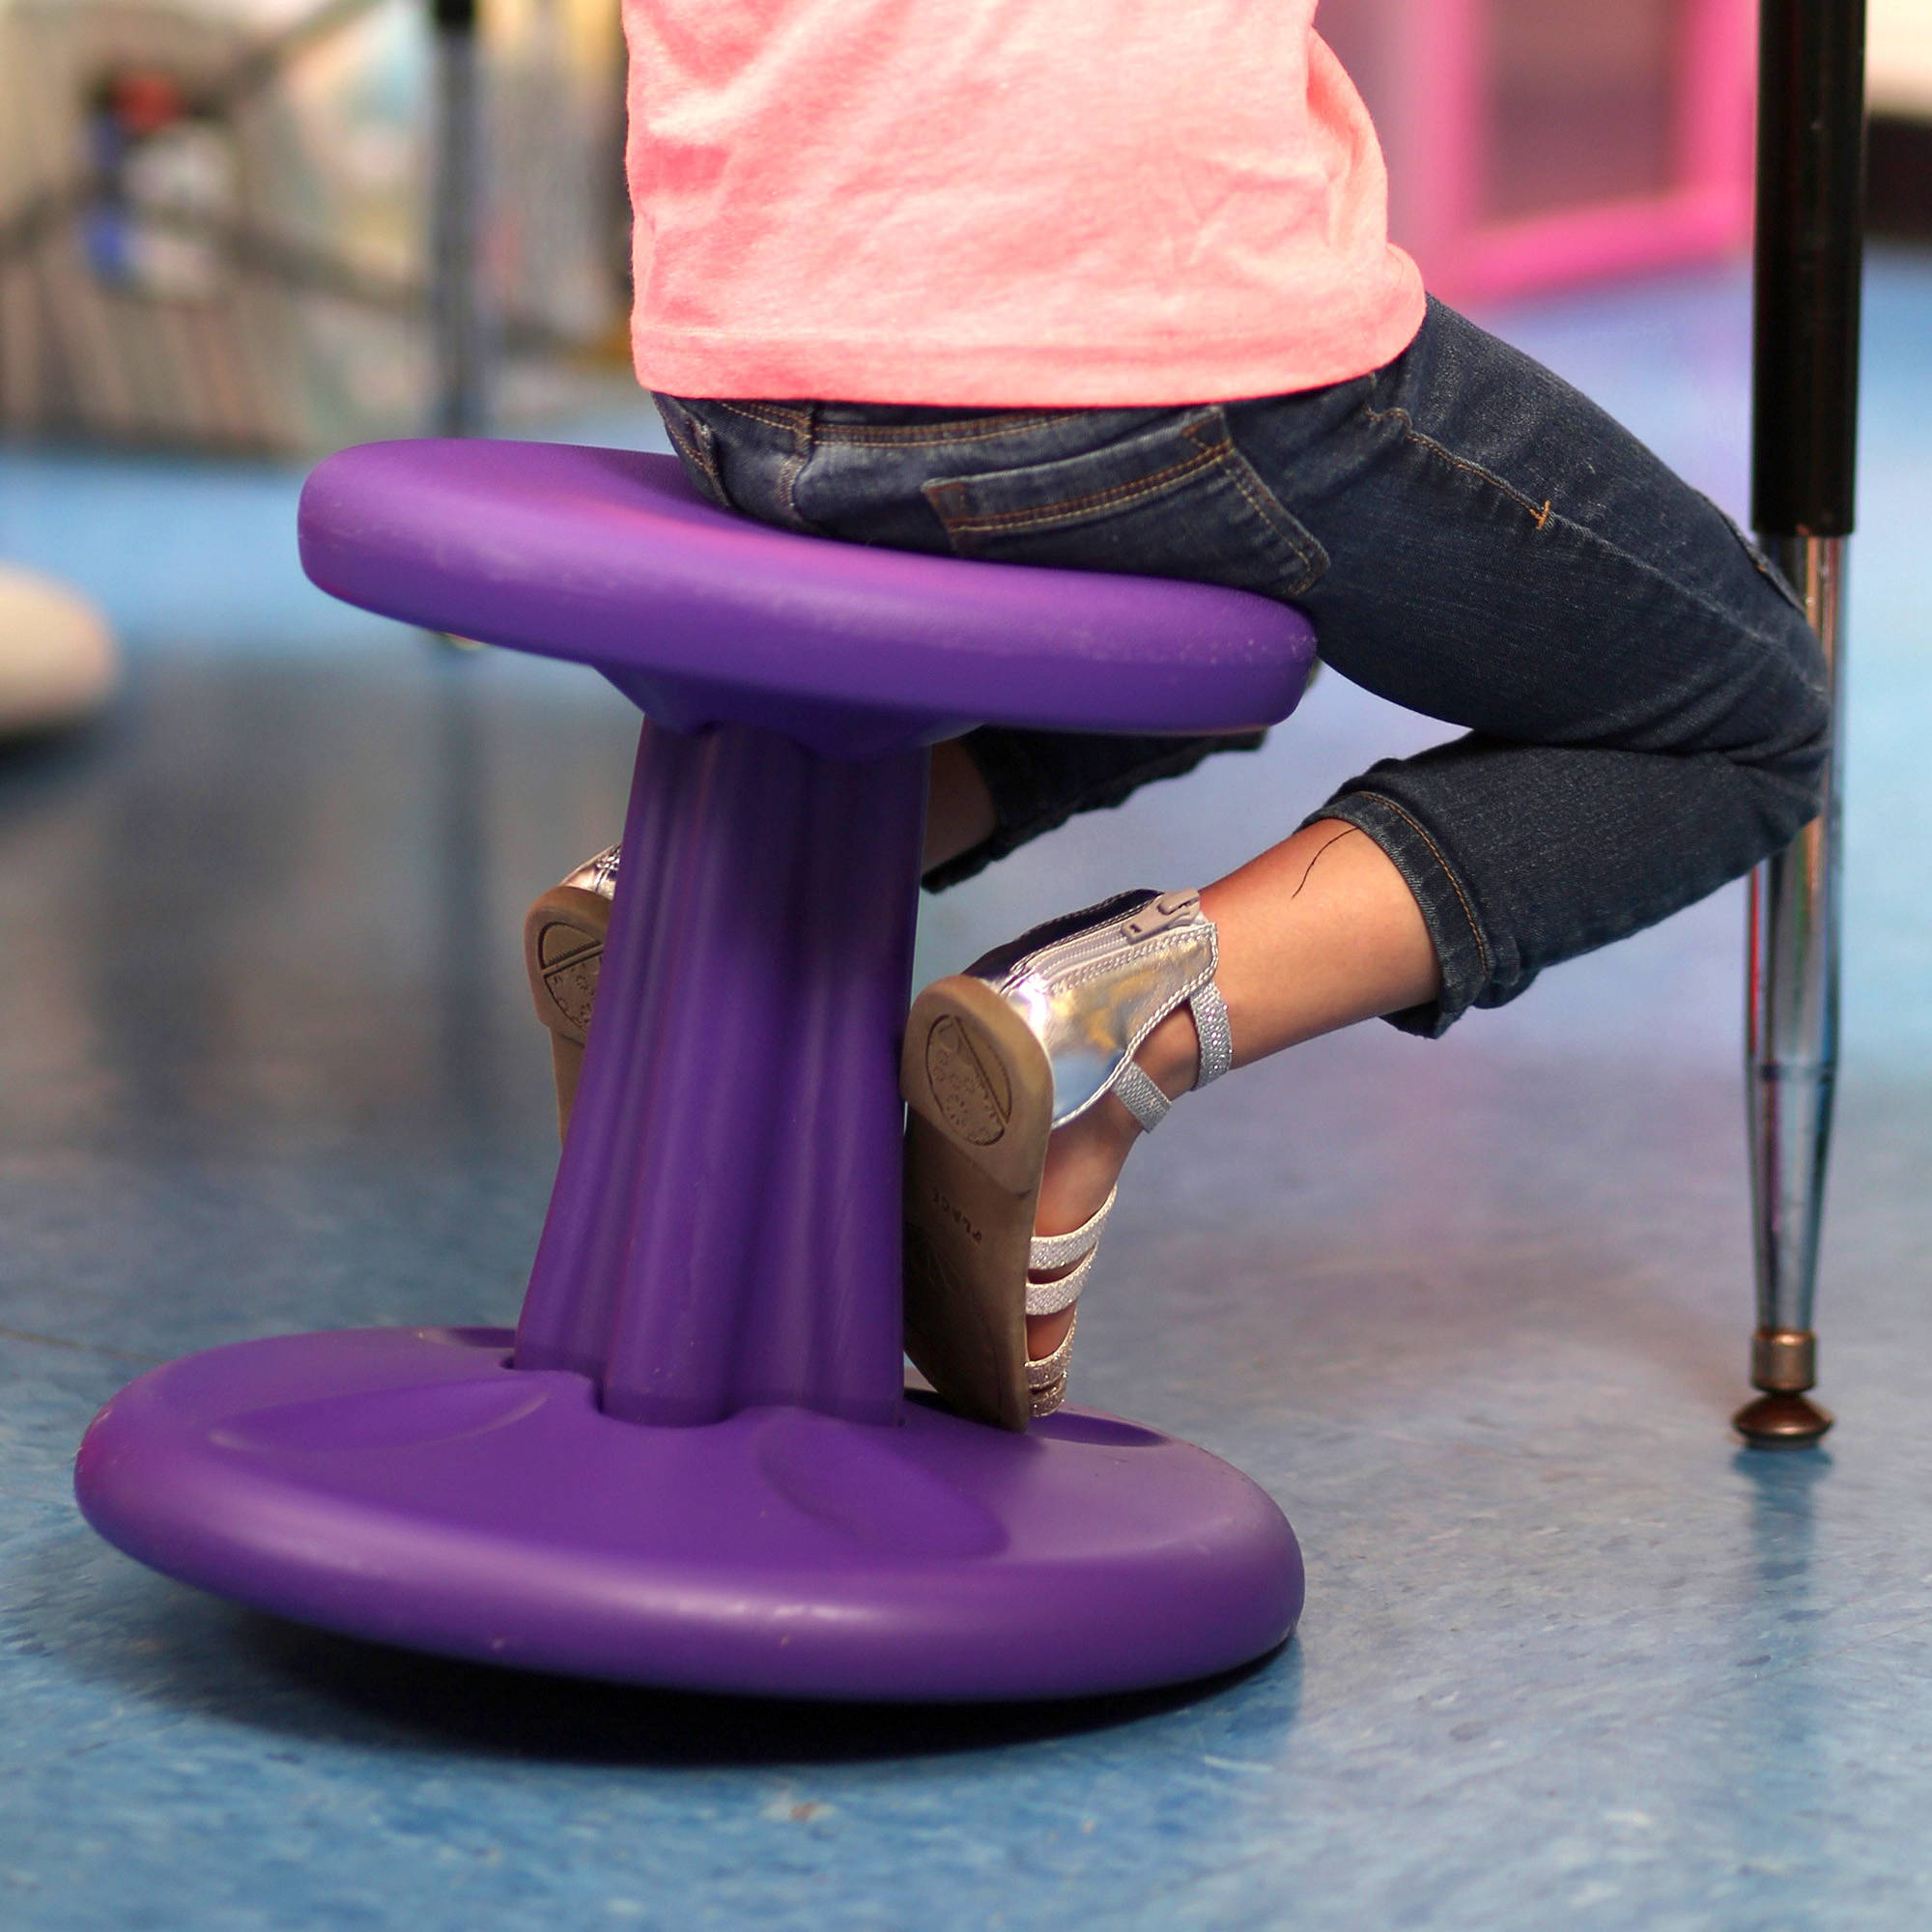 Kore Designs Wobble Chair | Homeschool Chair | Wobble Stools